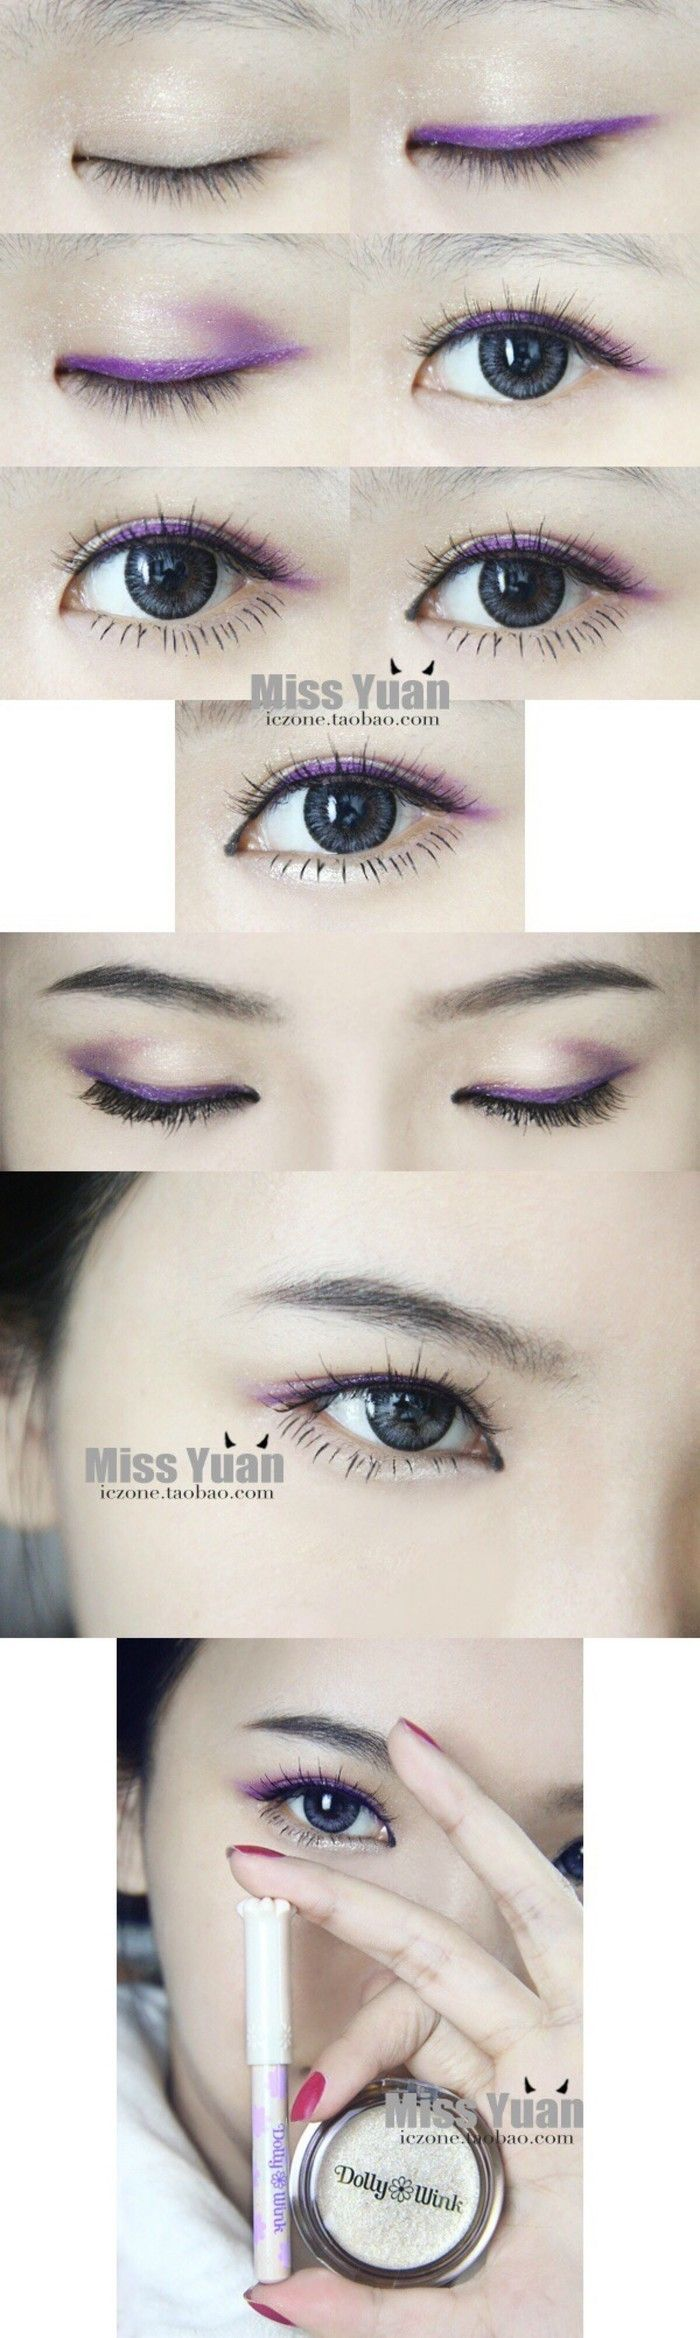 Mysterious eye make up #make up #idea